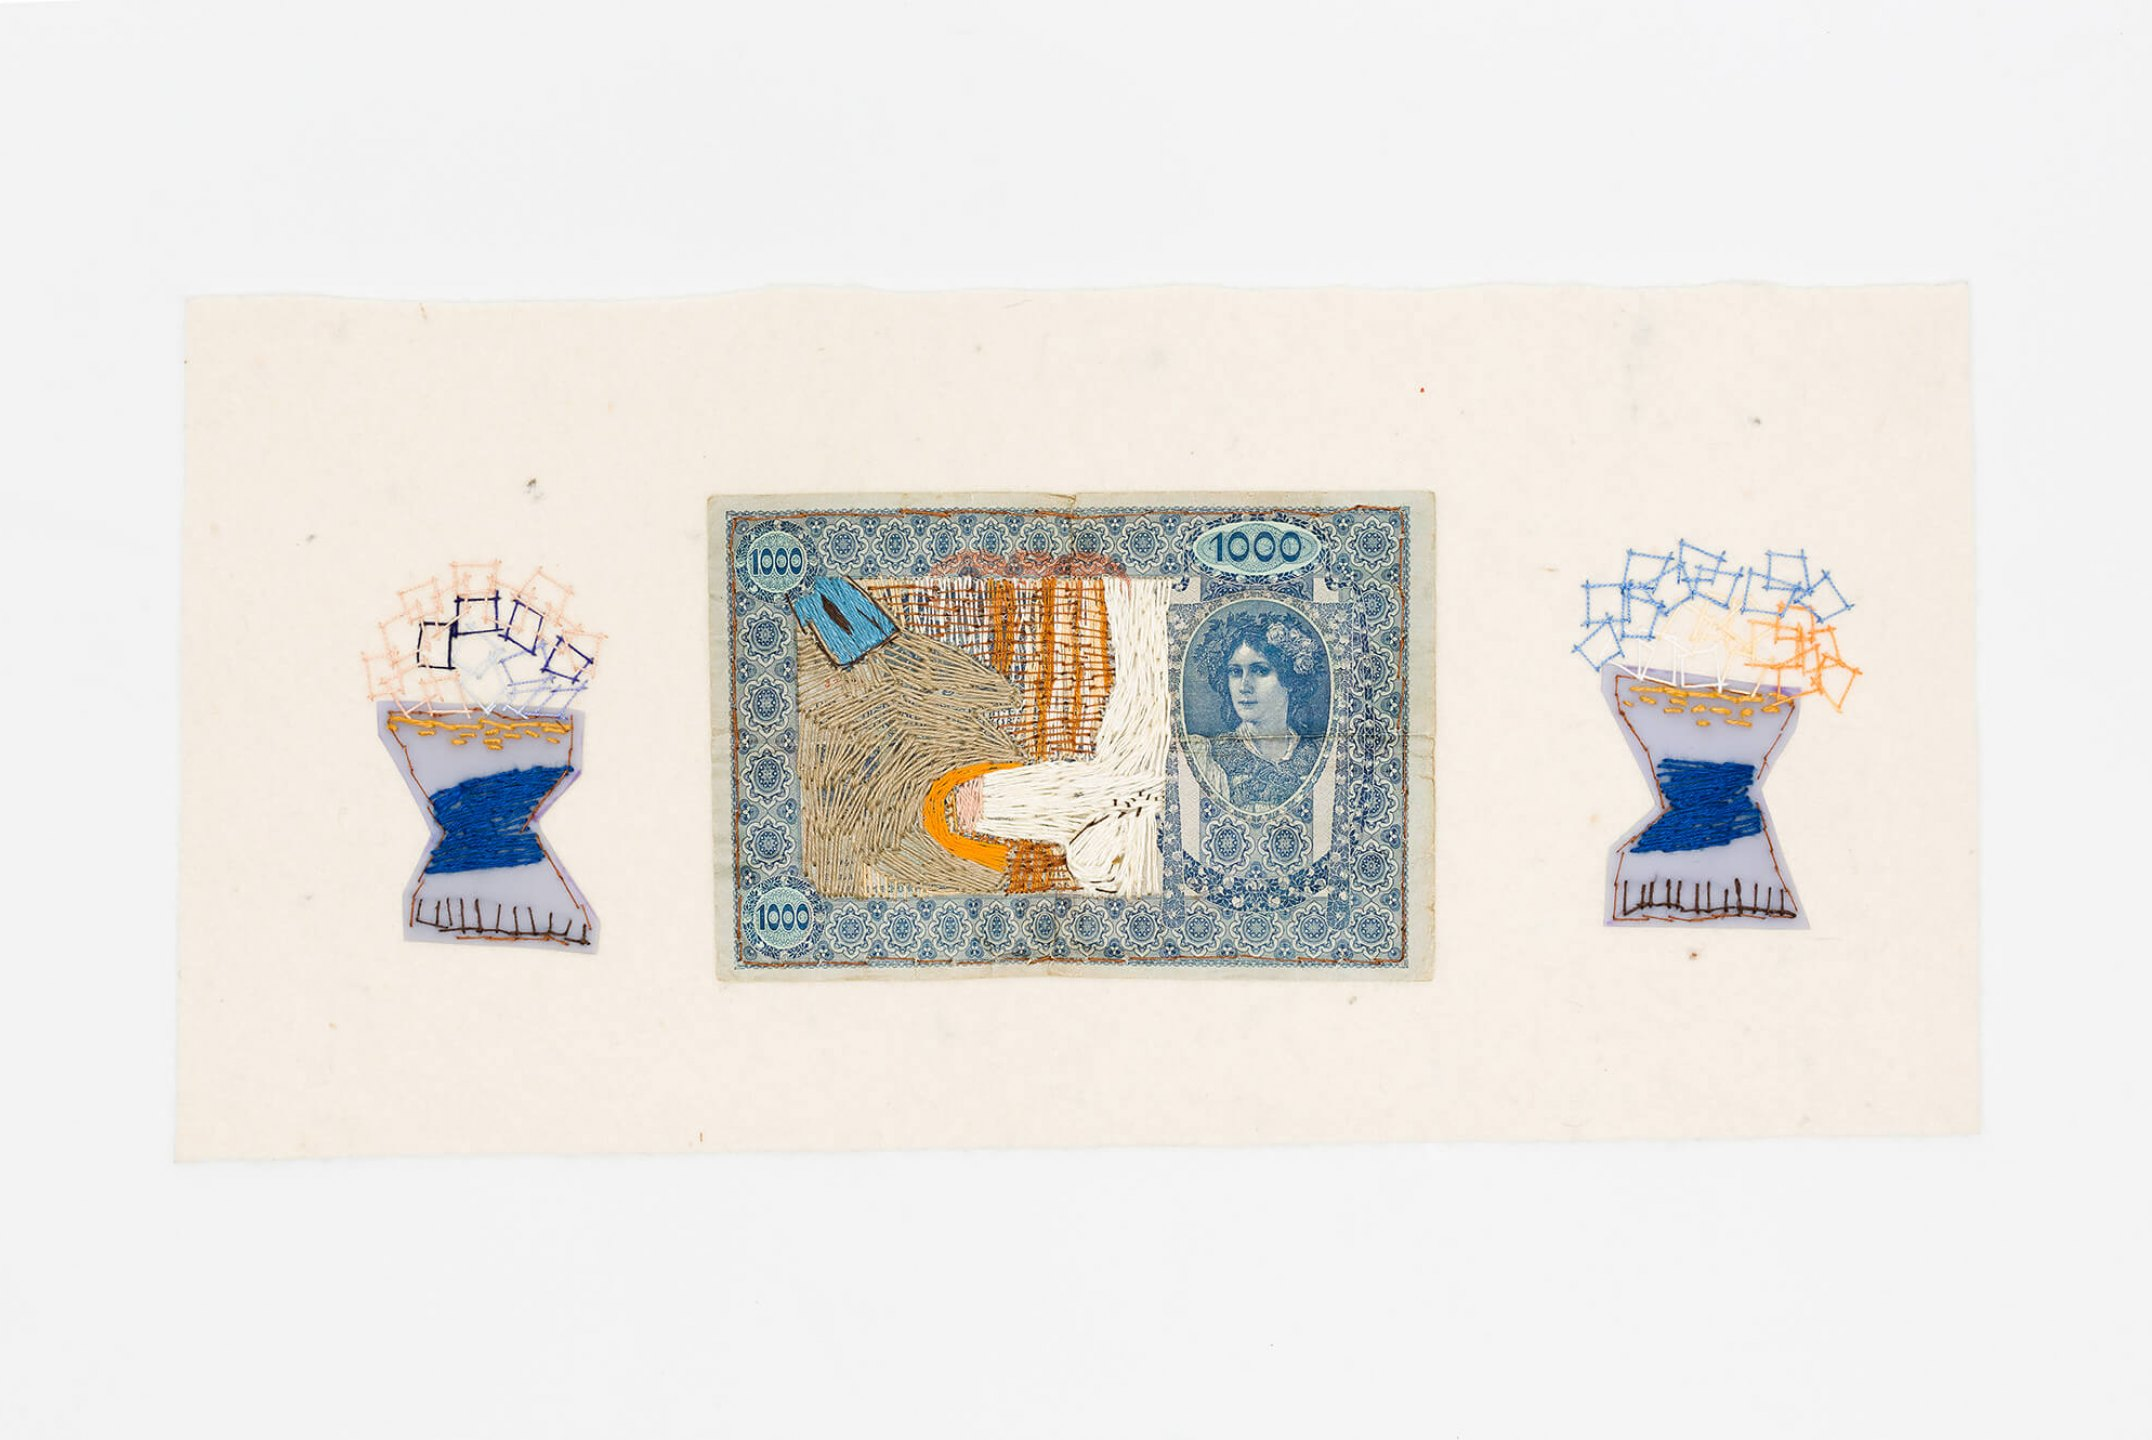 f. marquespeteado, <em>Mil boquetes 01, from Wedgwood erótica series, </em>2008/2009, old banknote hand embroidery with linen thread on industrial felt, 22 × 48 cm - Mendes Wood DM